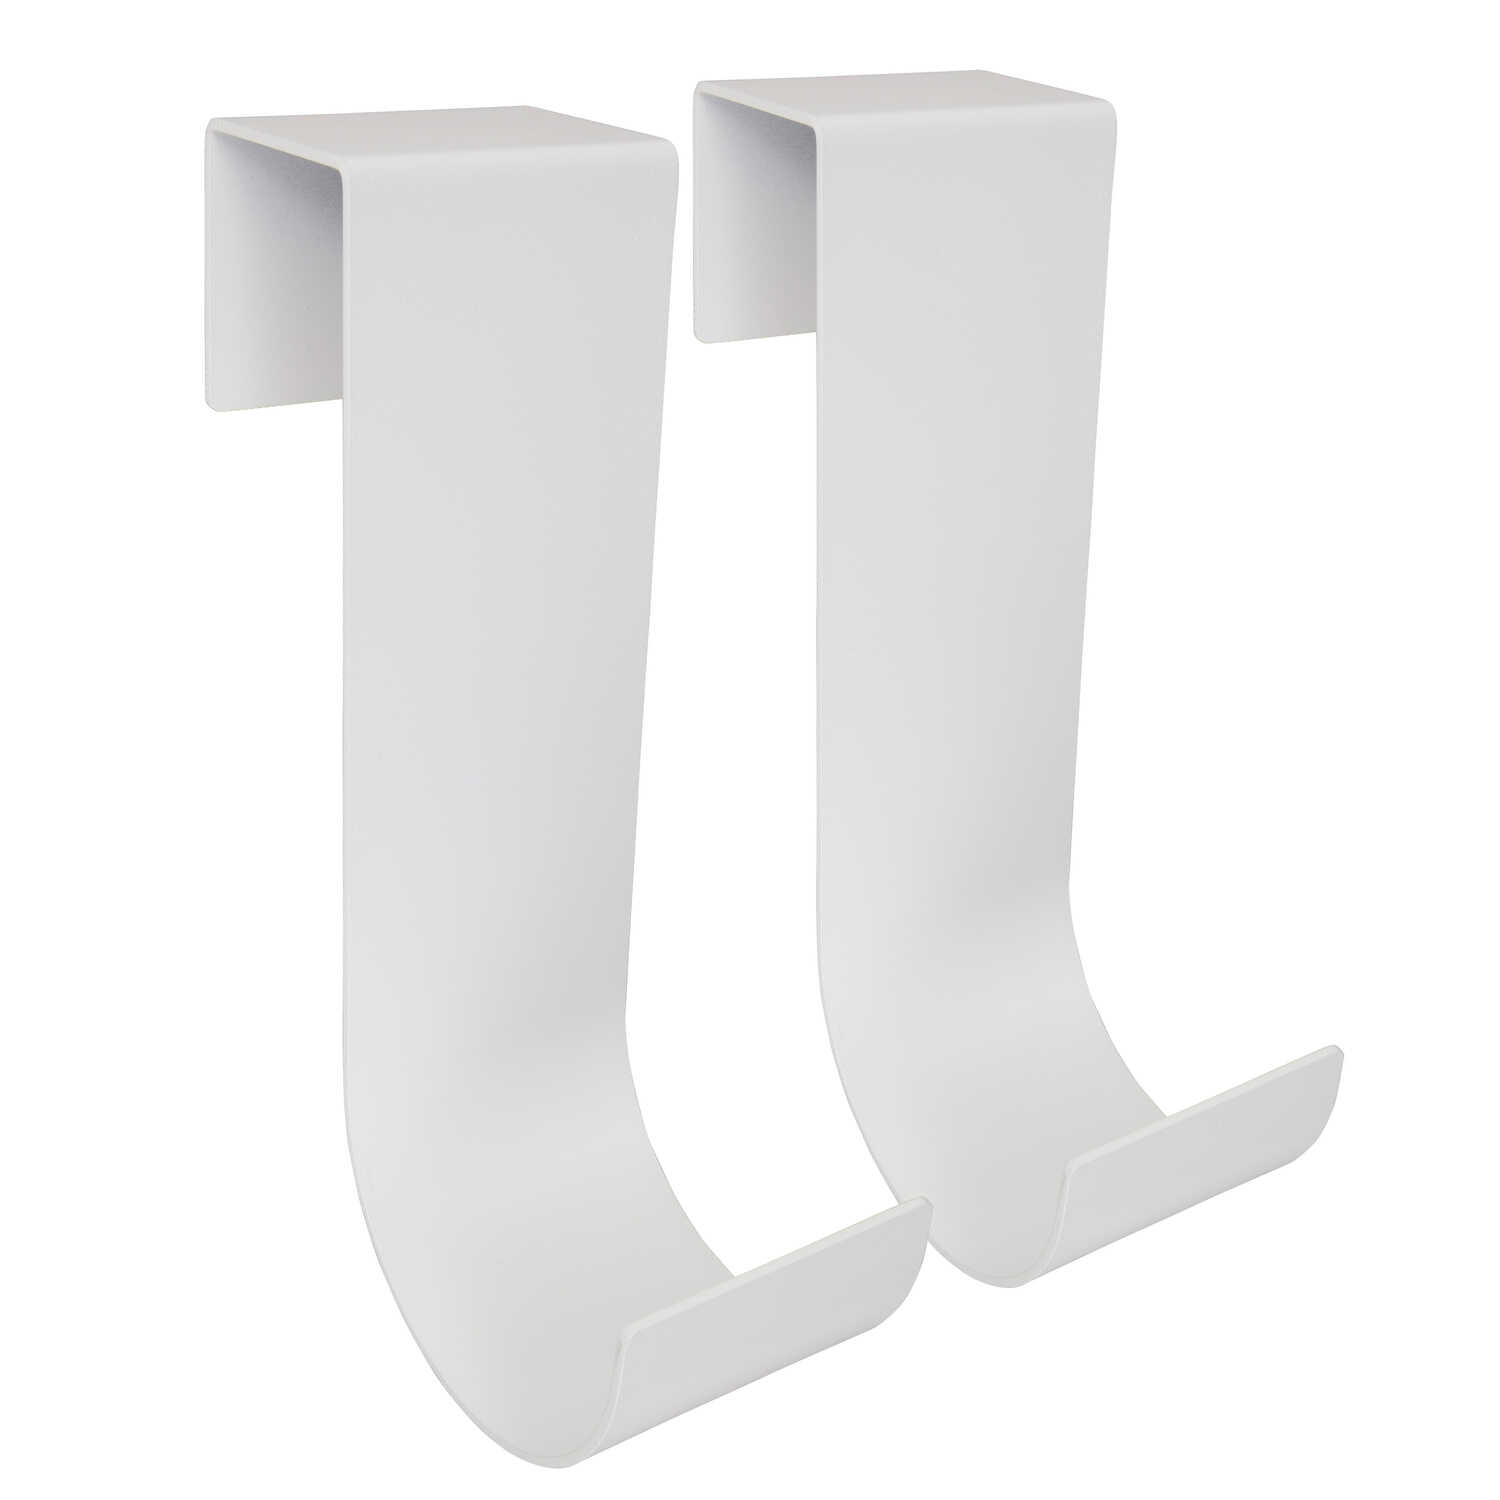 Mide Products  Powder Coated  10 in. L White  Long  Fence Mount  Hook  Aluminum  2 pk 25 lb.